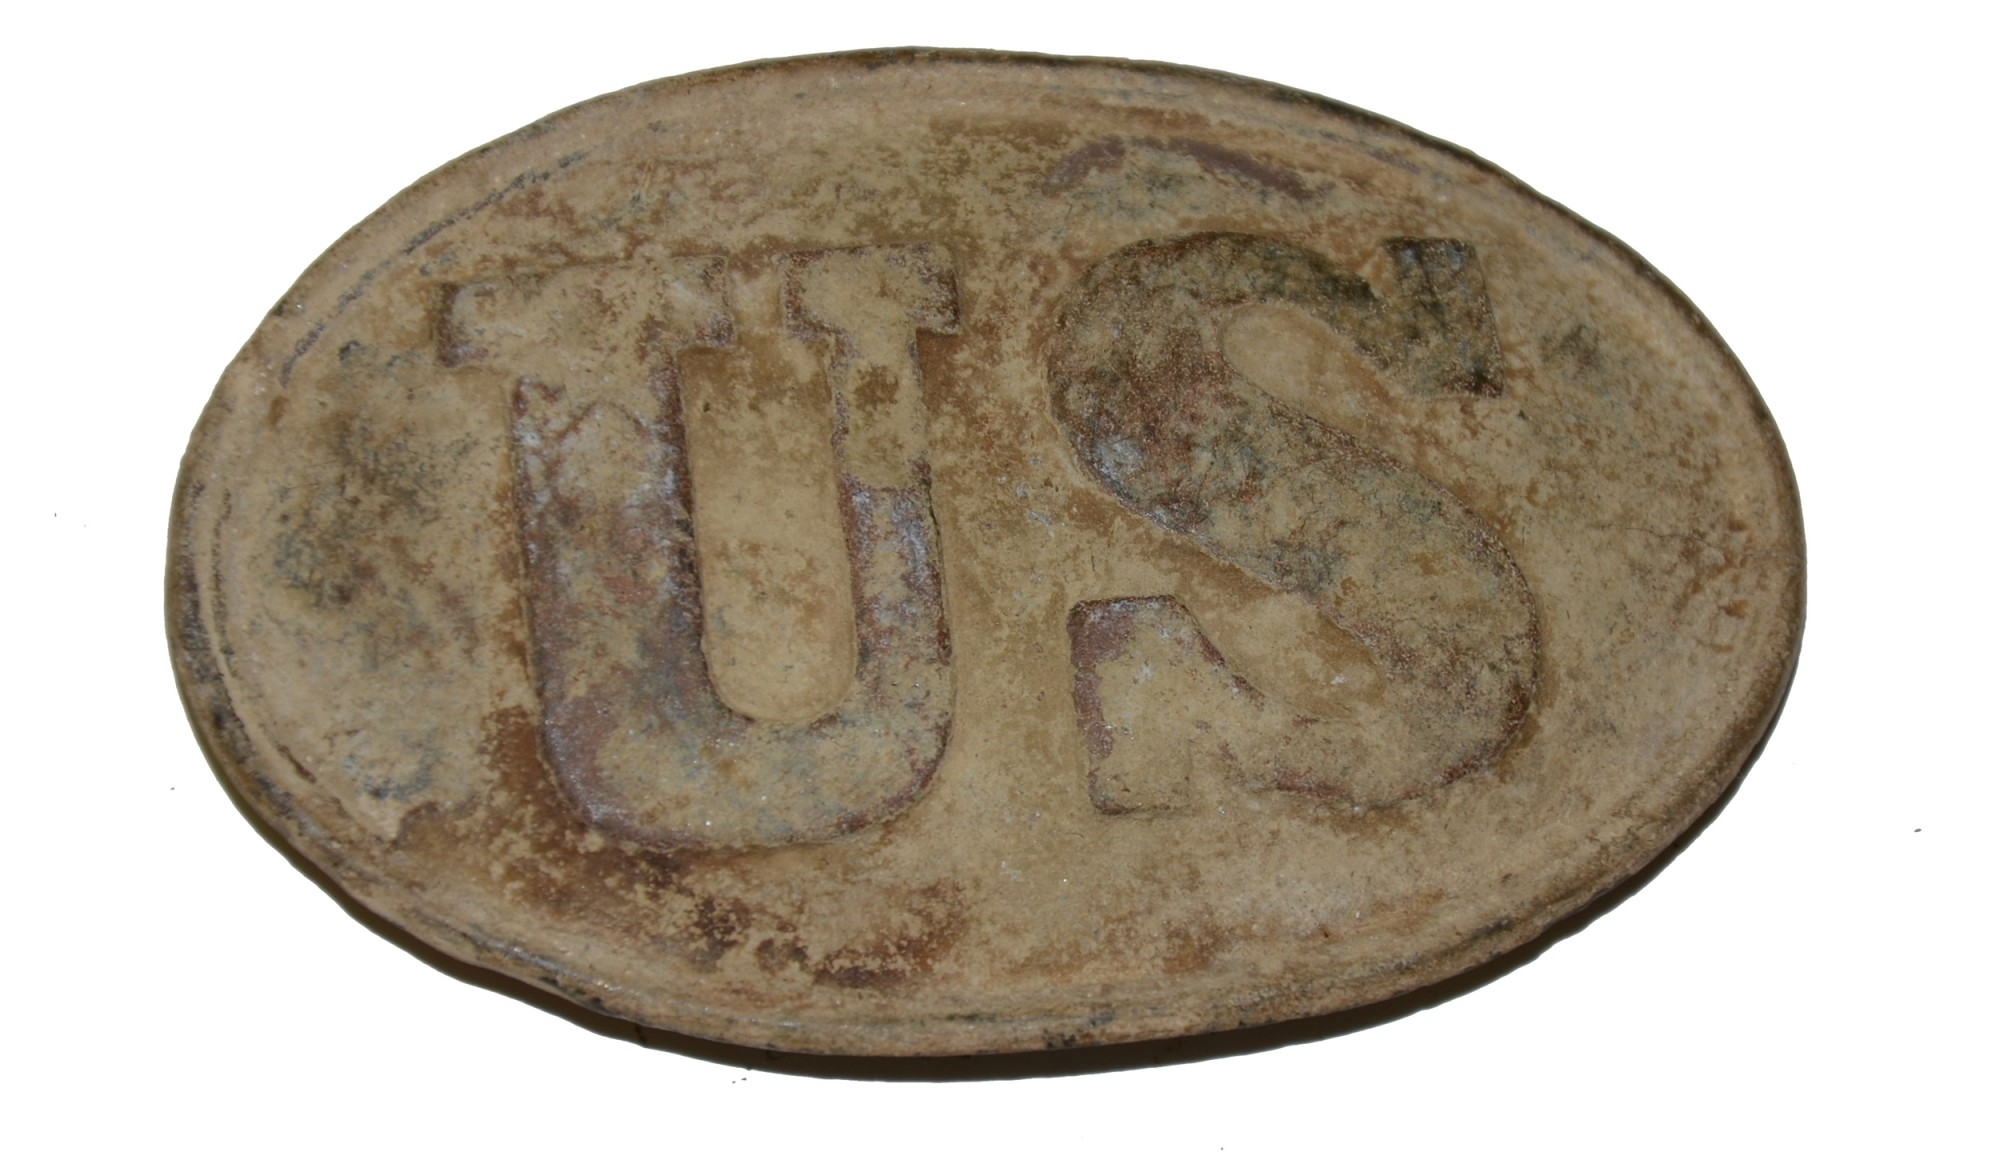 PATTERN 1839 OVAL US BELT PLATE RECOVERED IN THE FREDERICKSBURG AREA